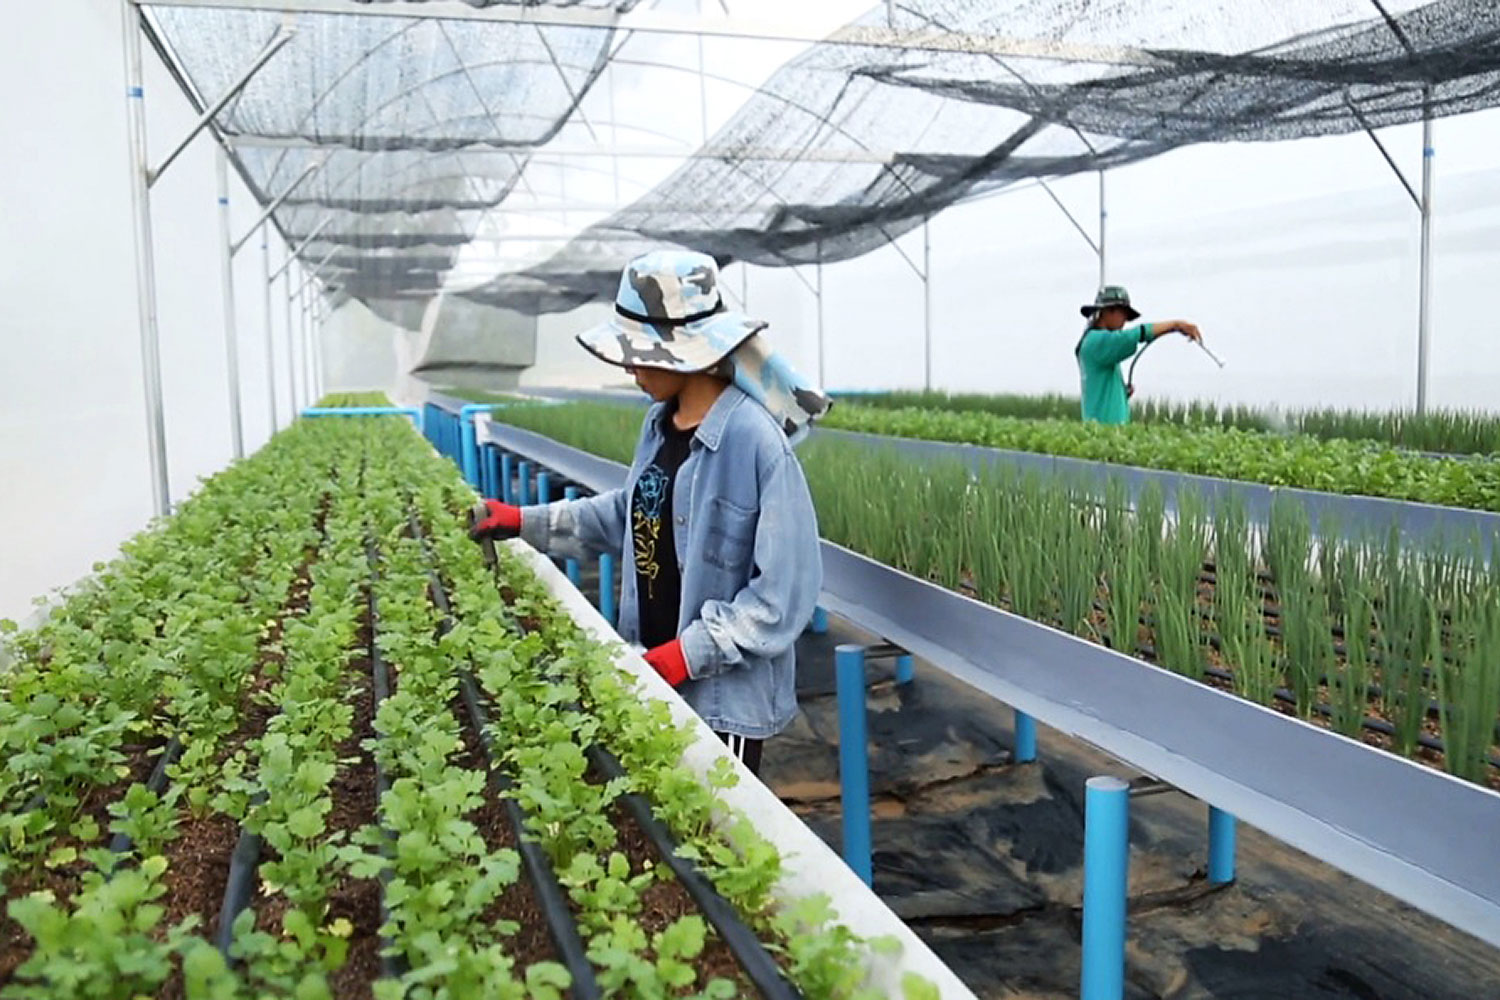 precision growth: A farmer tends to vegetables in a greenhouse that practises precision farming methods under the guidance of the Pid Thong Lang Phra Foundation working with a Royal Initiative Project in Udon Thani.